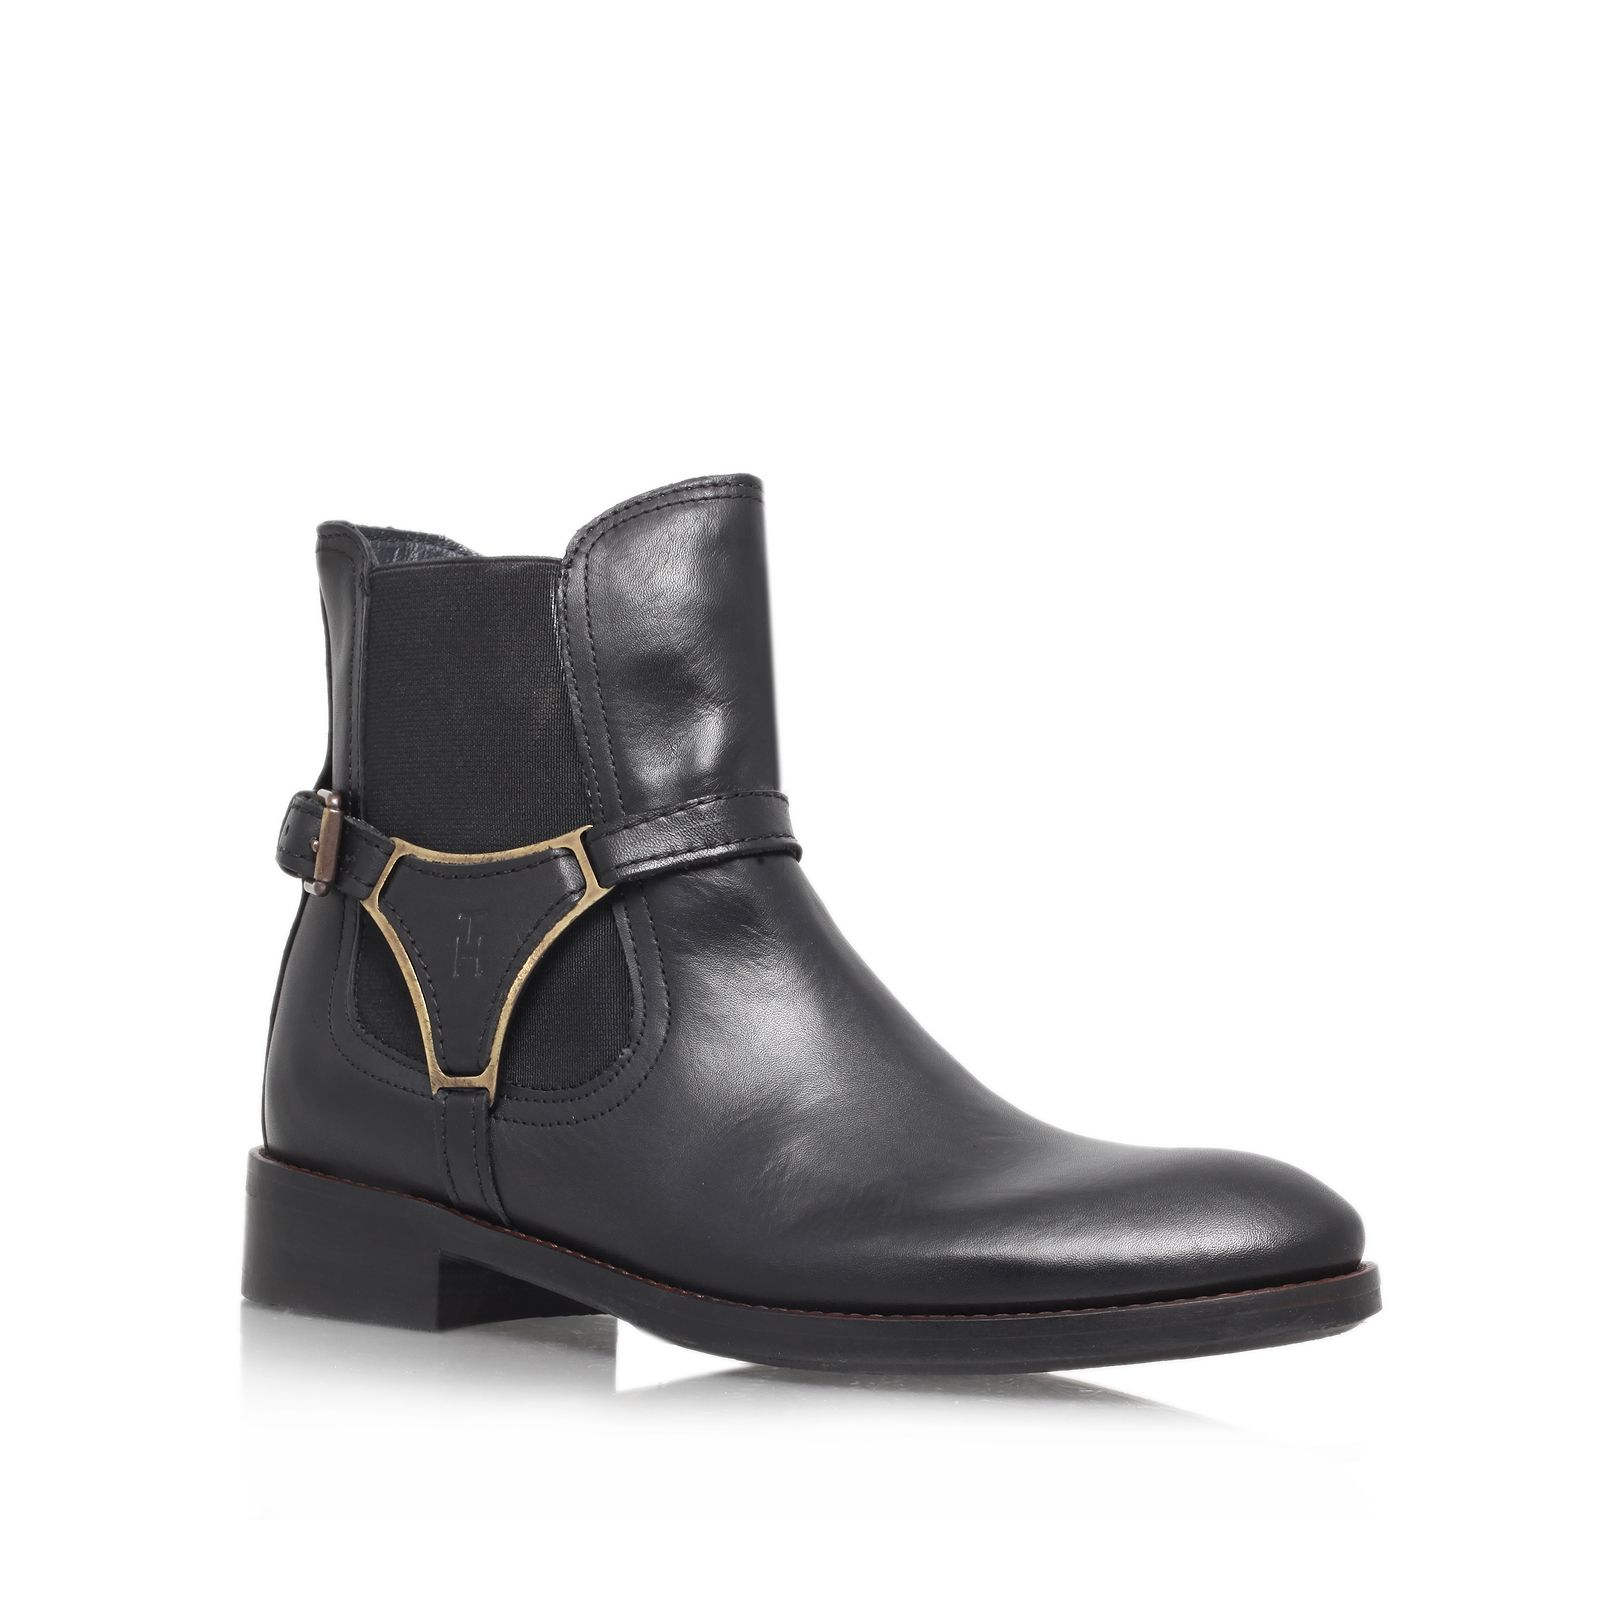 tommy hilfiger hamilton ankle boot in black for men lyst. Black Bedroom Furniture Sets. Home Design Ideas